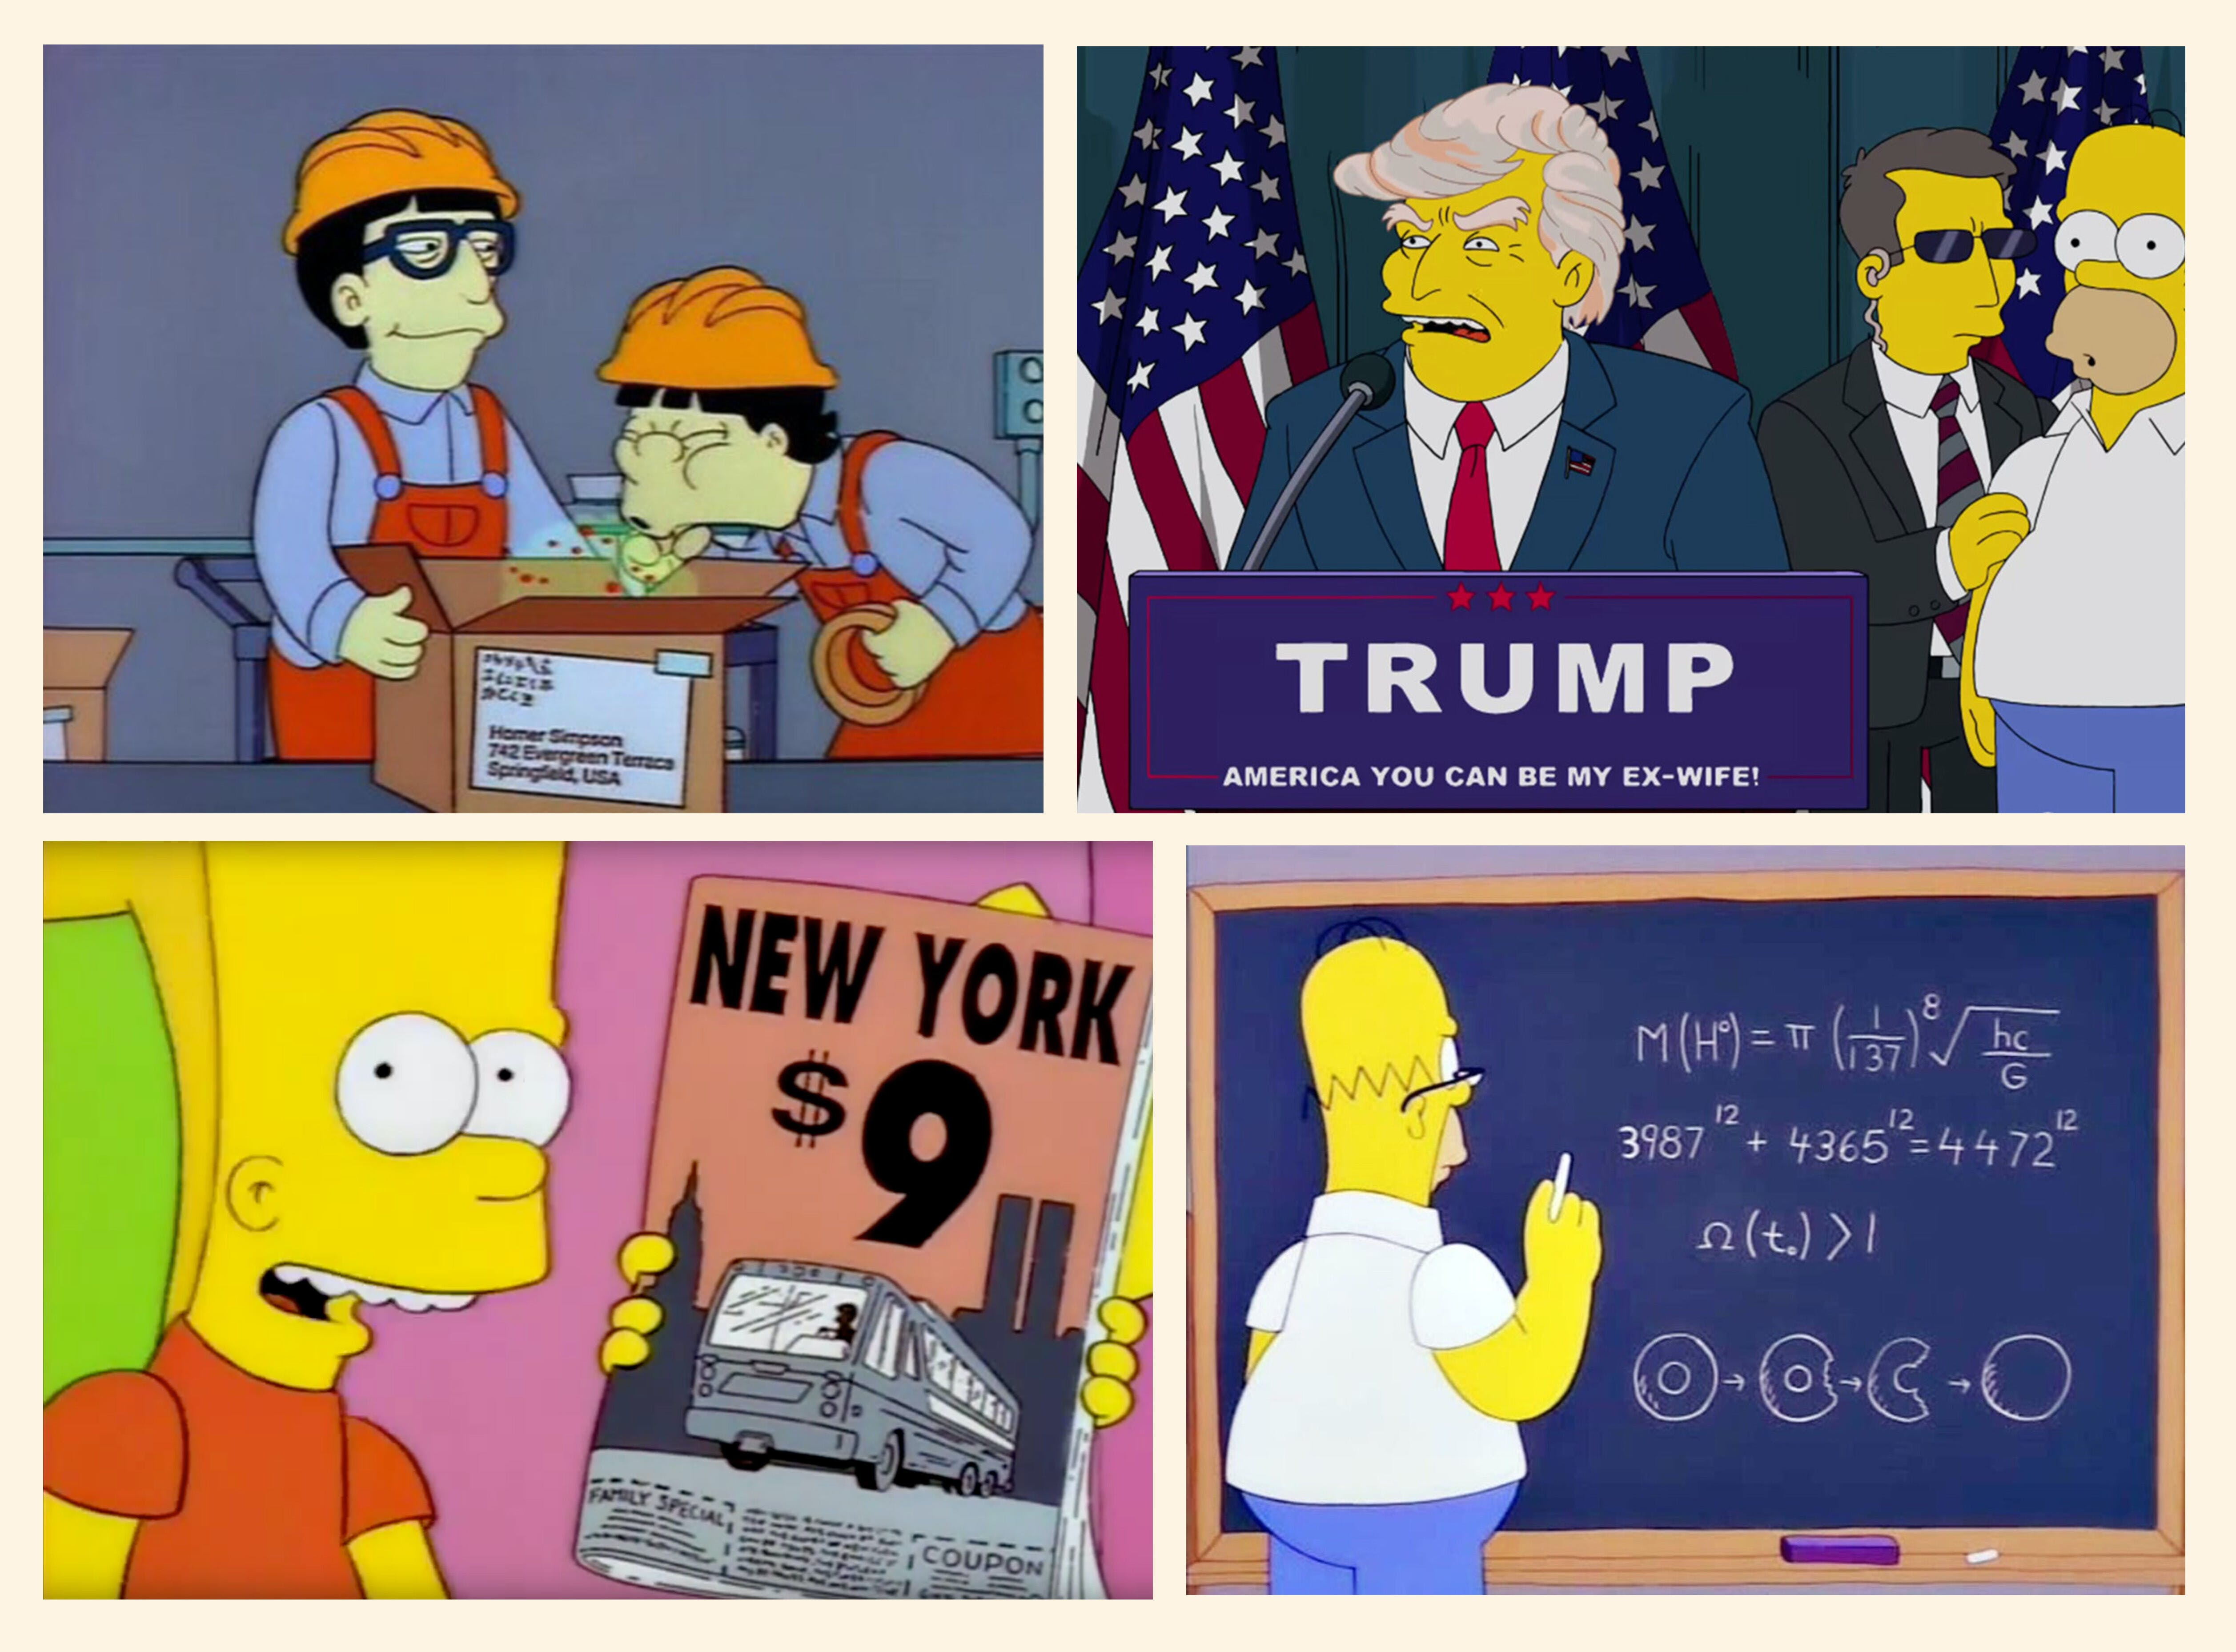 Simpsons: It's All Been There Before